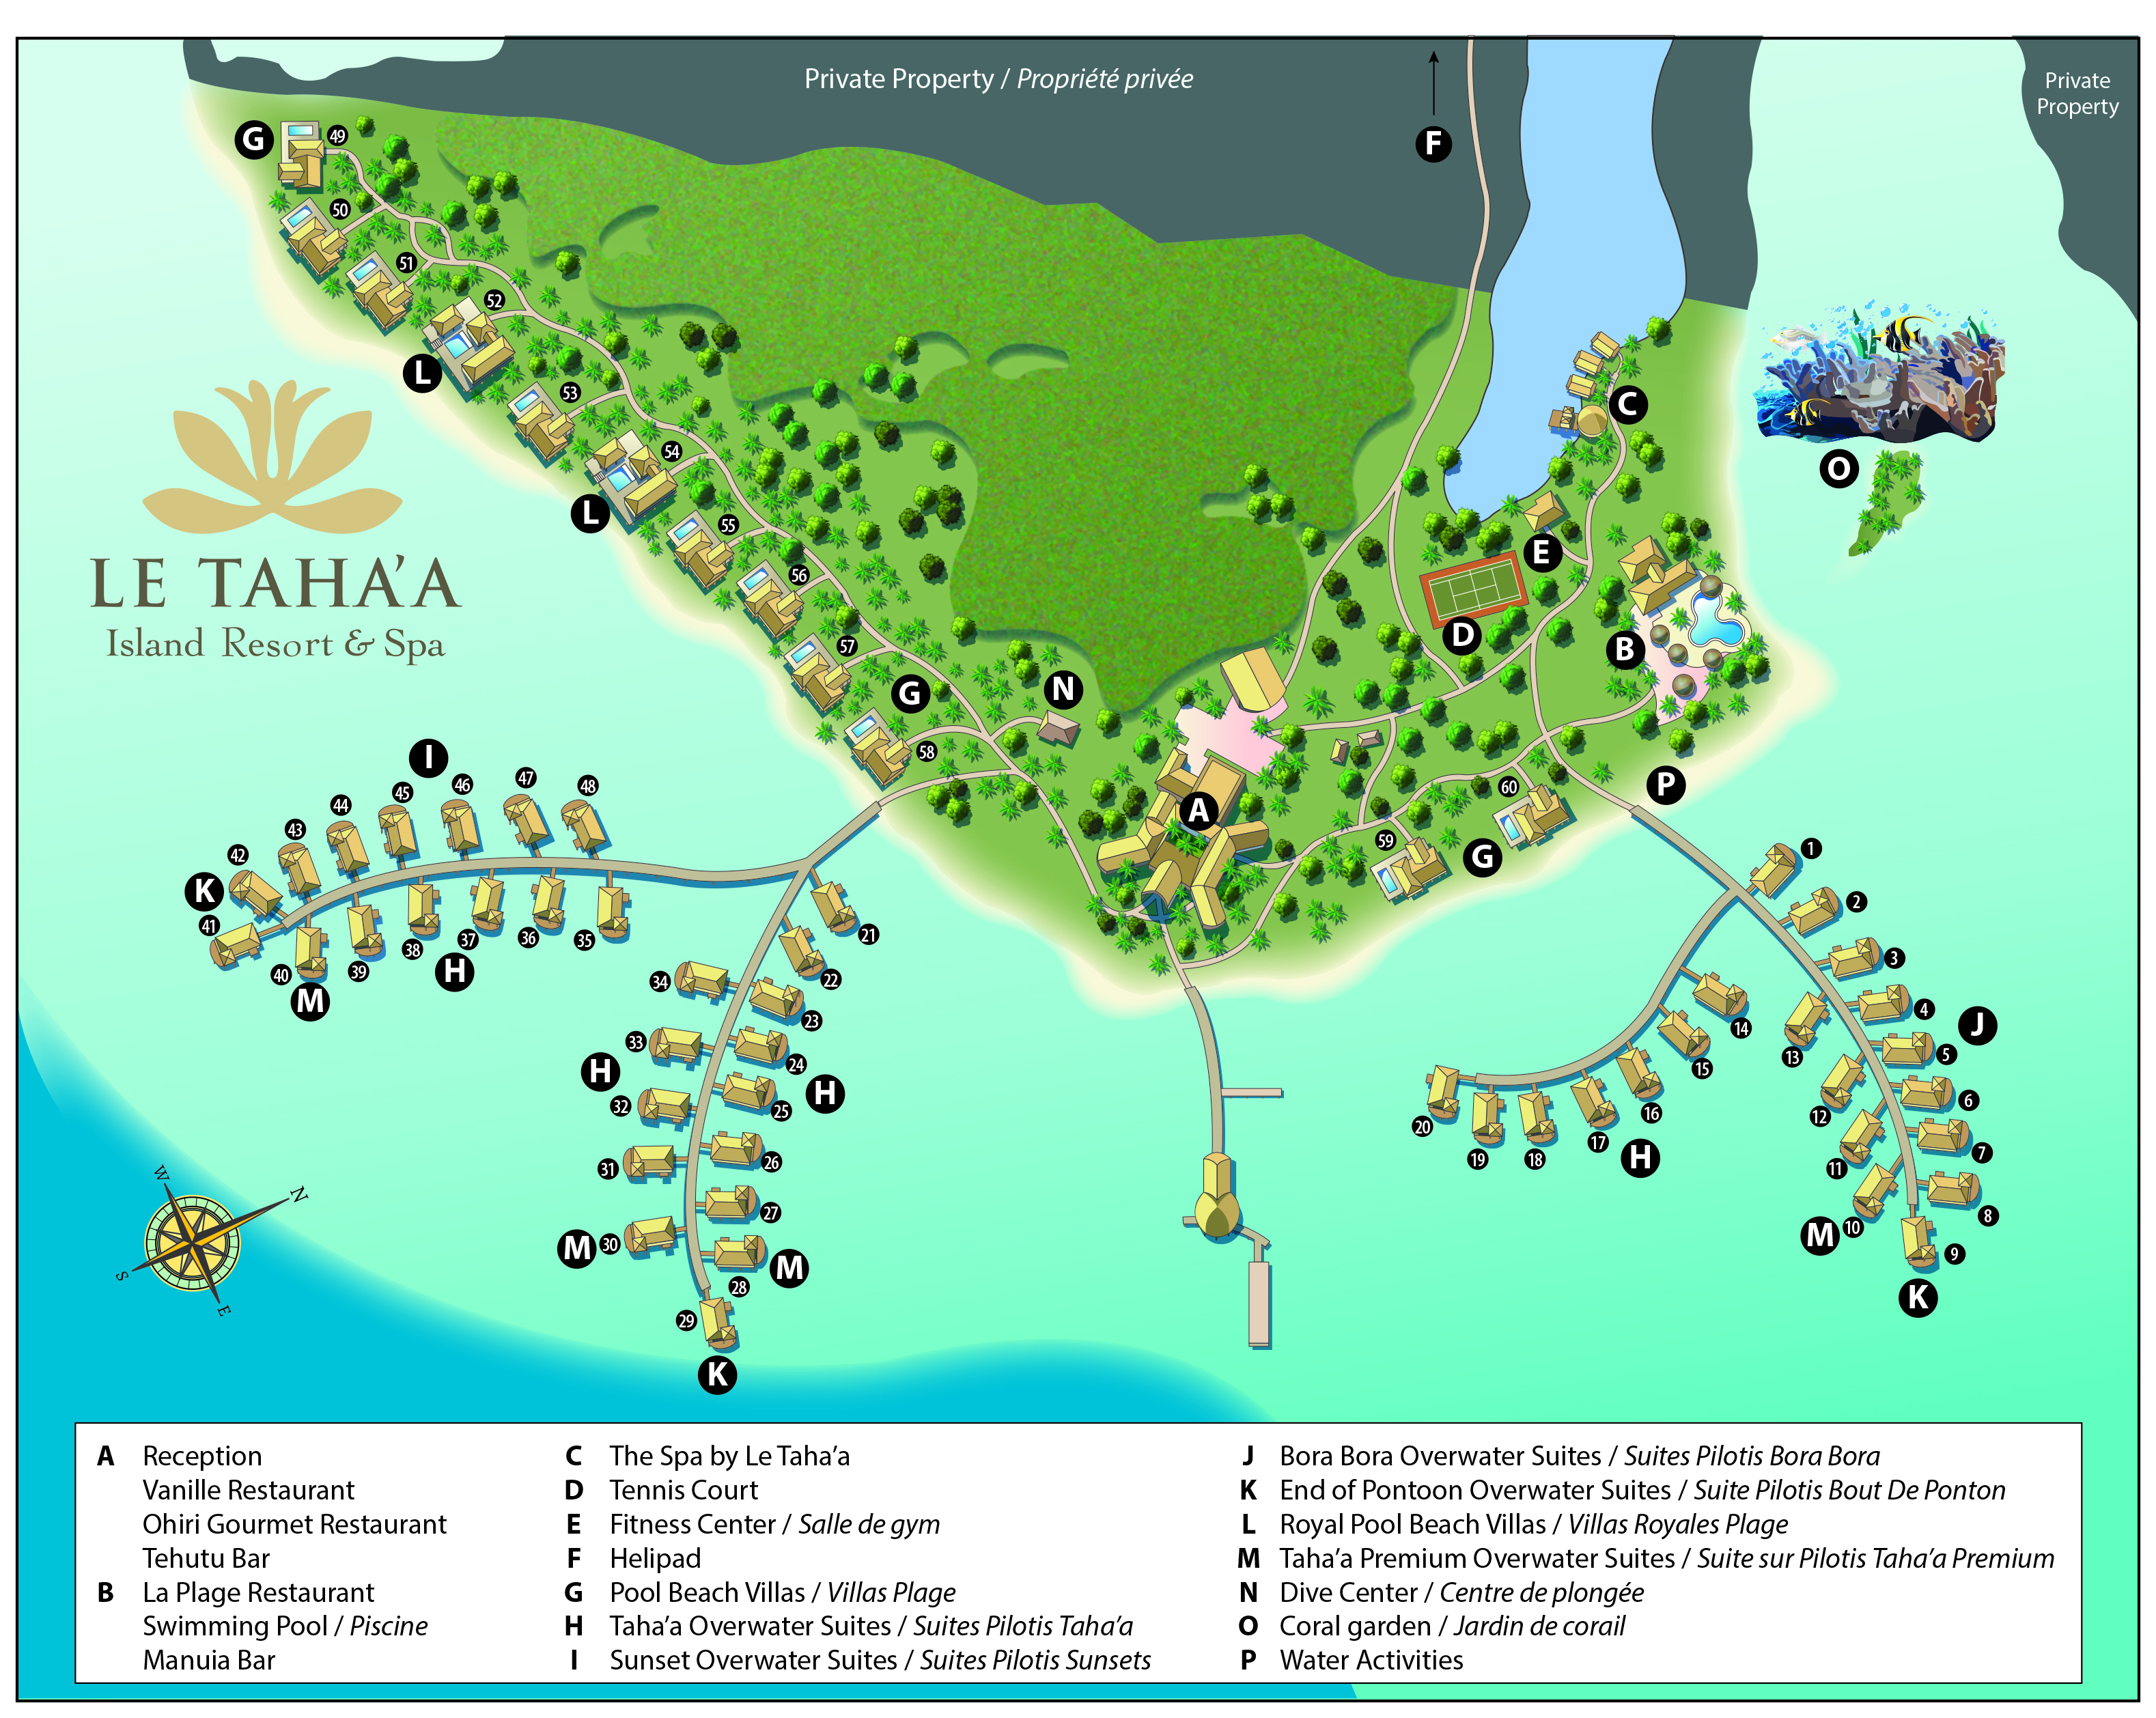 Five Star Hotel Le Taha A Island Resort Spa